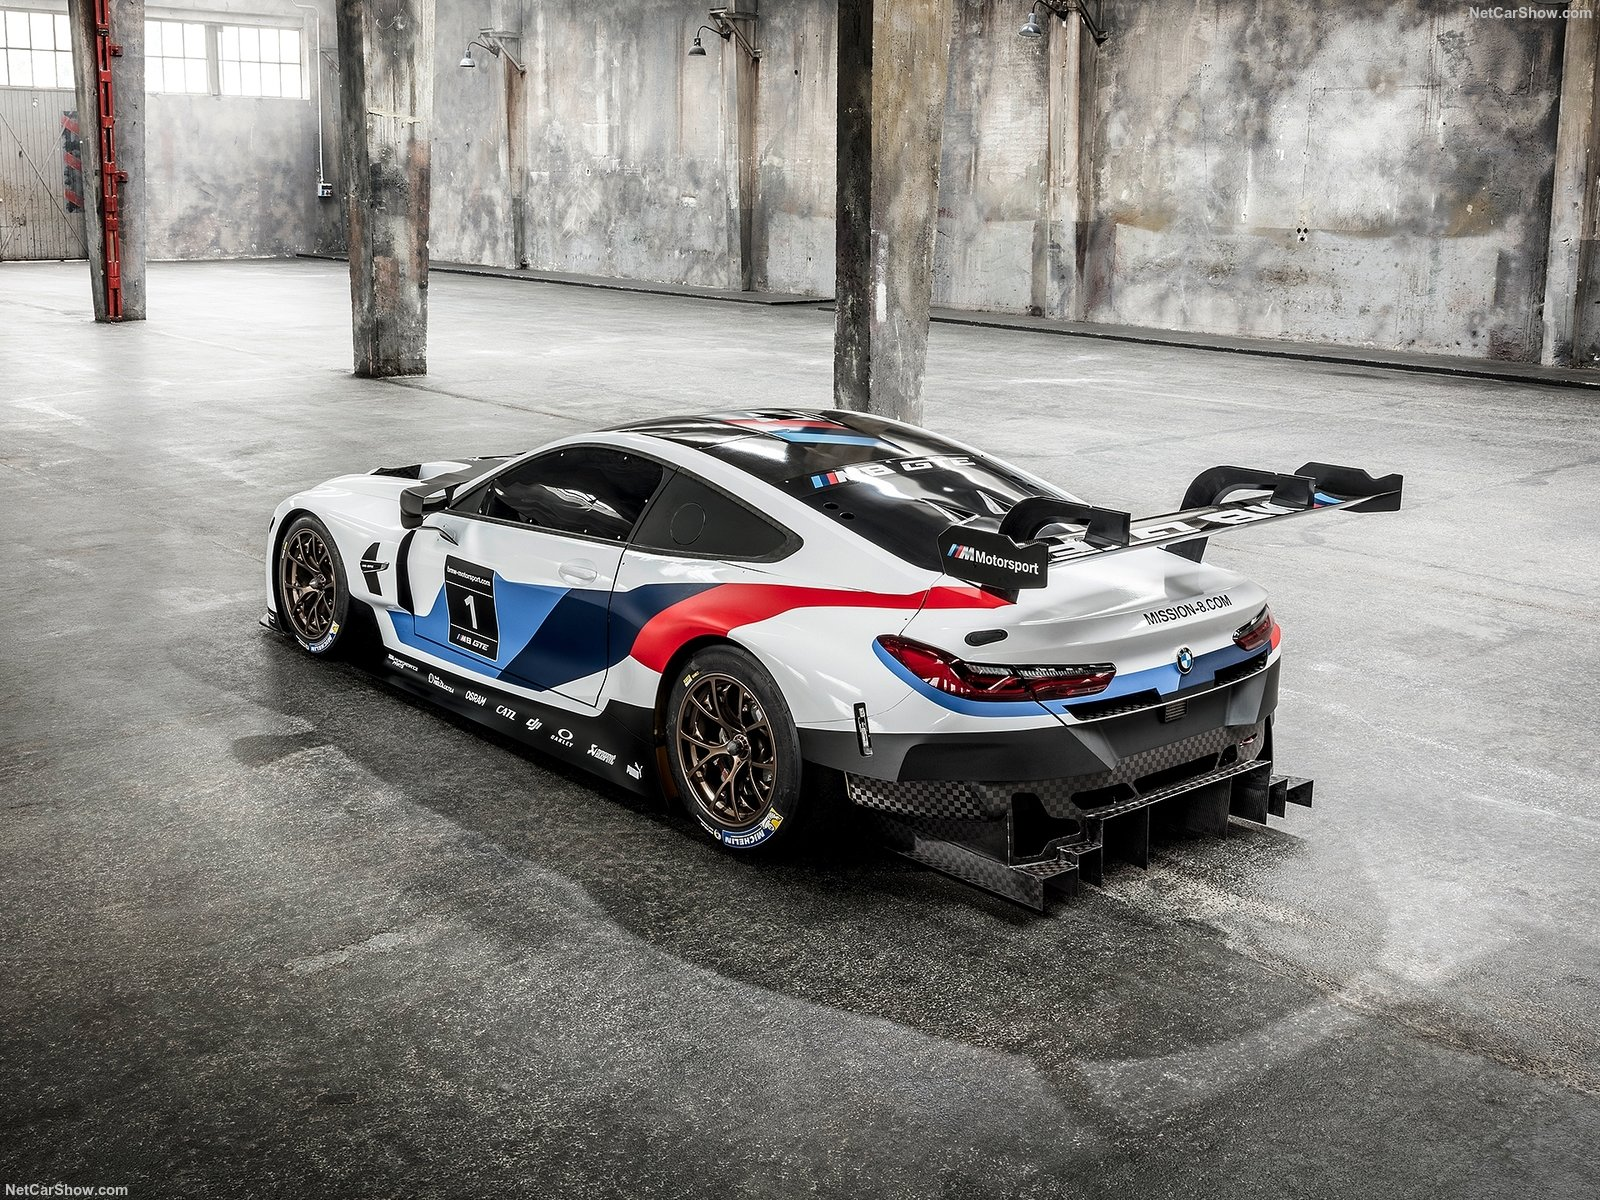 BMW M8 GTE Racecar photo 186220